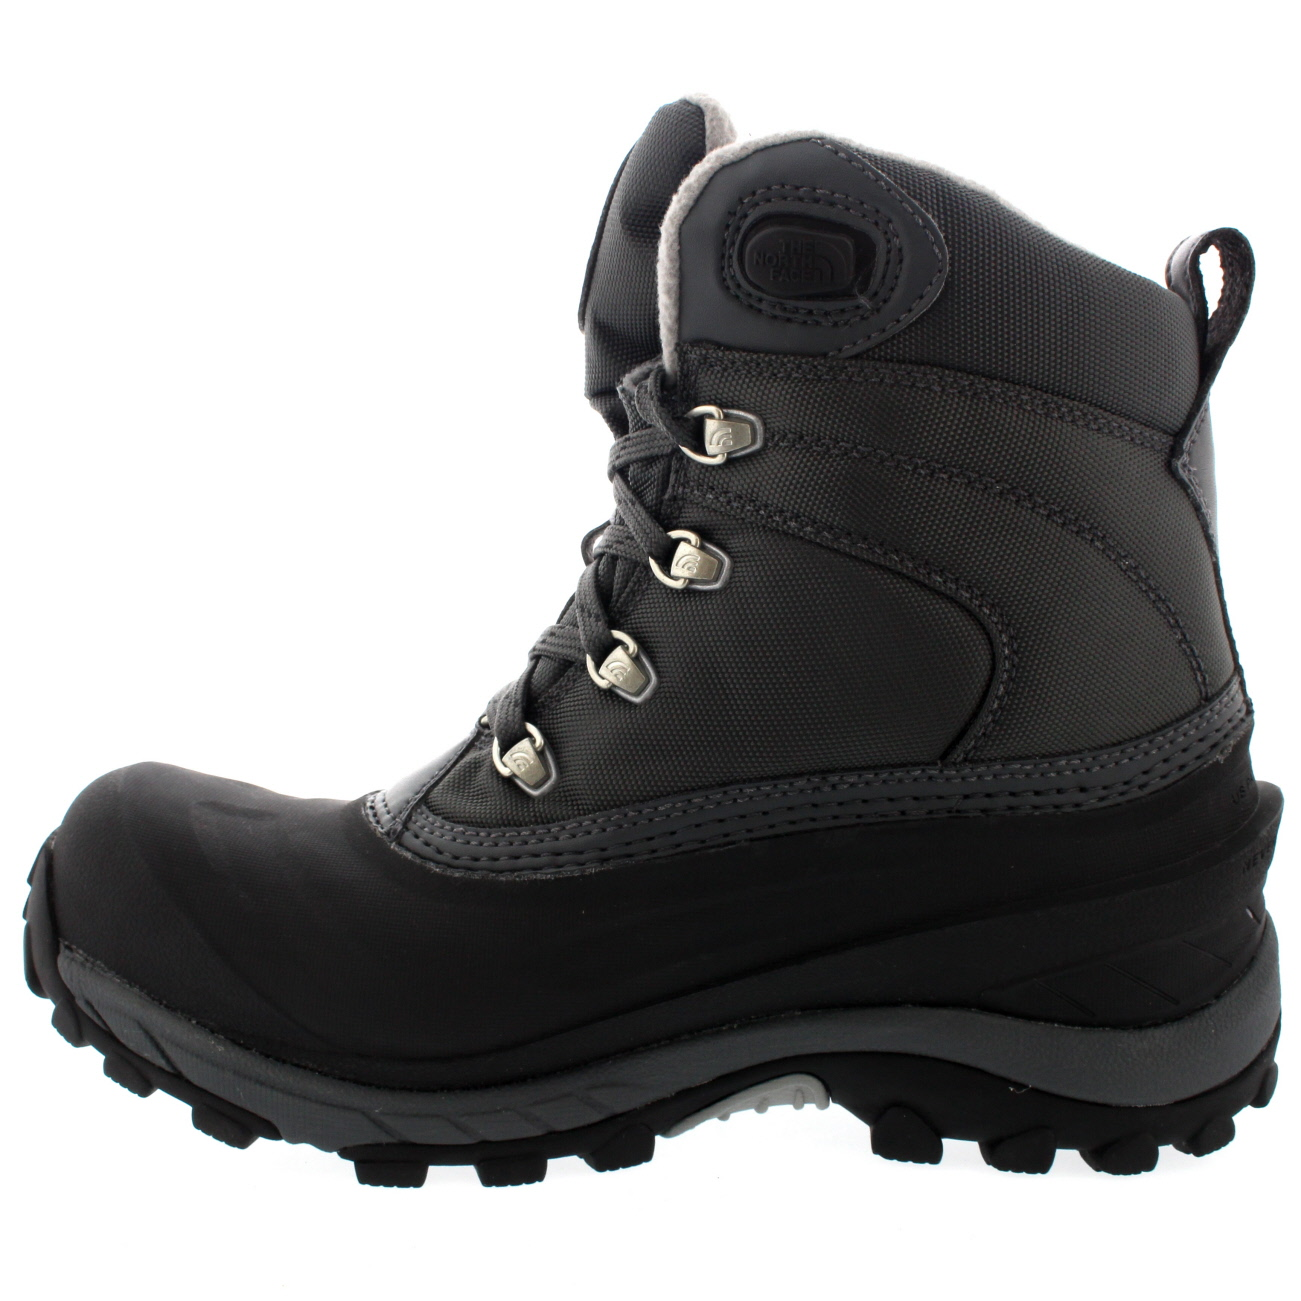 Mens The North Face Chilkat Iii Snow Hiking Lace Up Winter